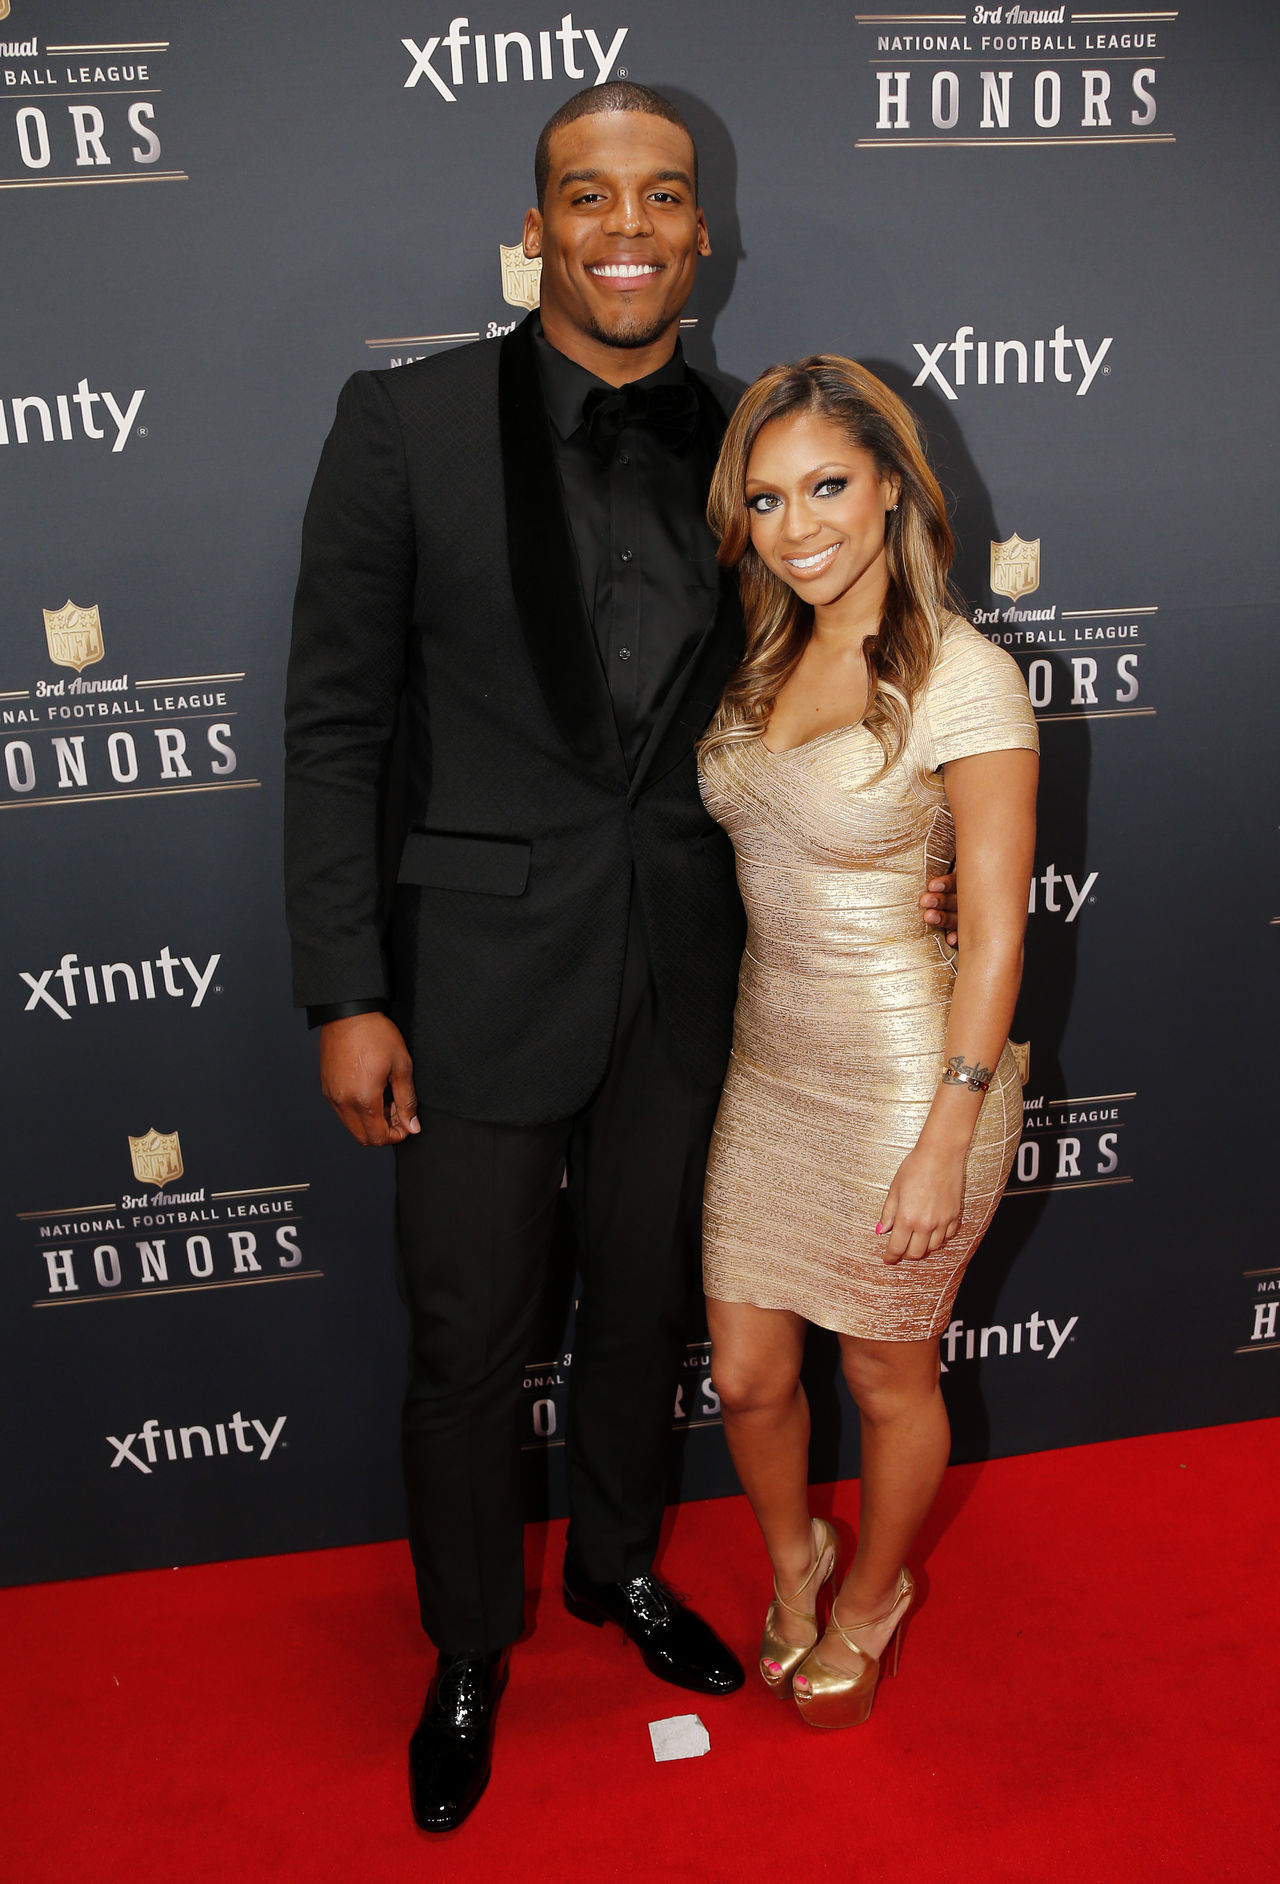 cam-newton-2014-NFl-honors